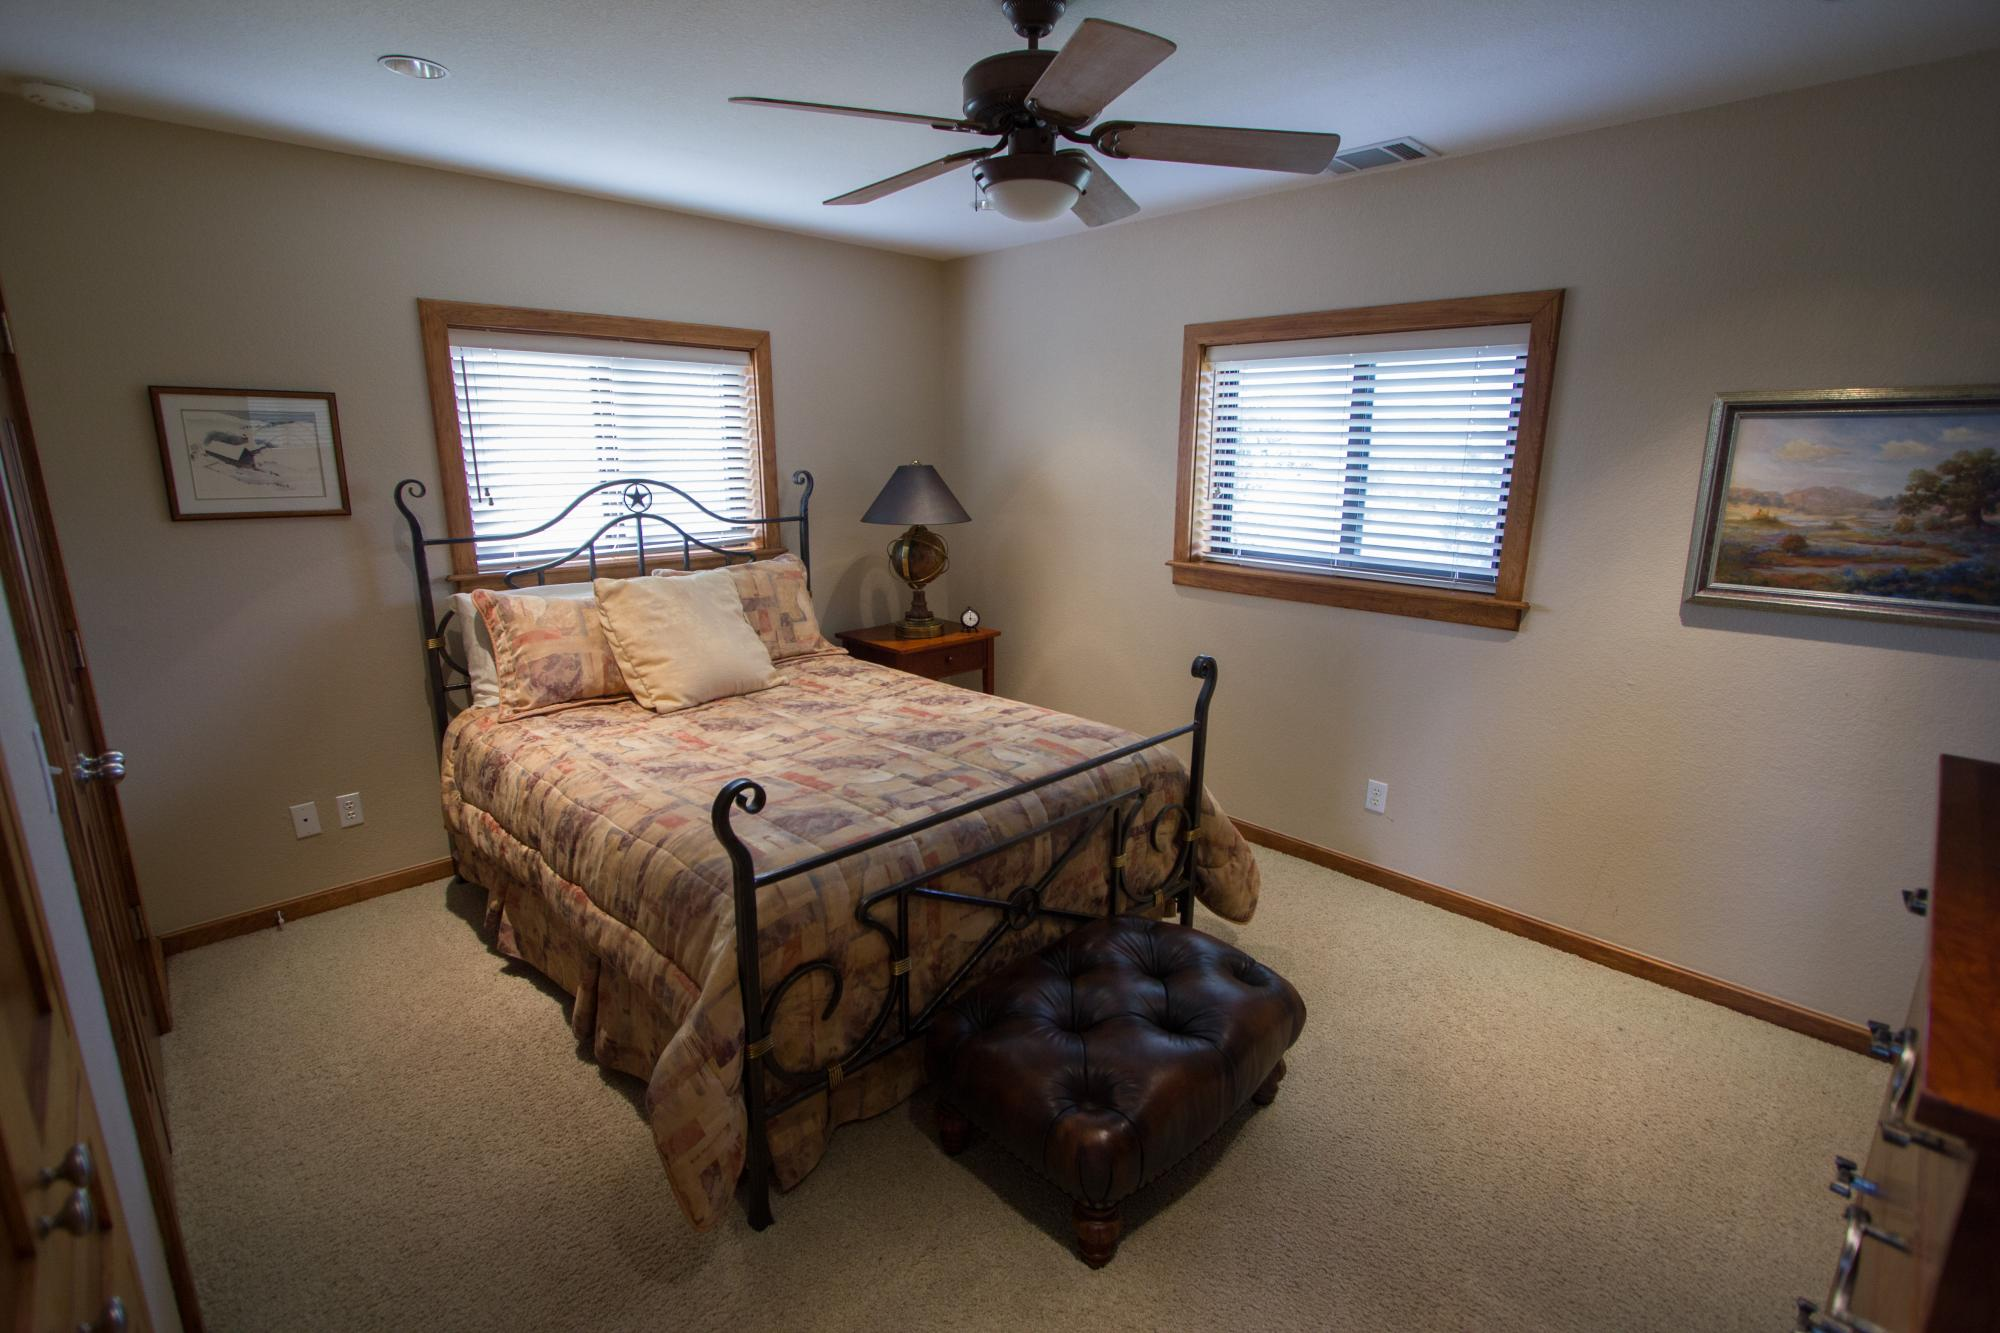 Vintner_s_Quarters_Bedroom_-_Peary_Photography.jpg